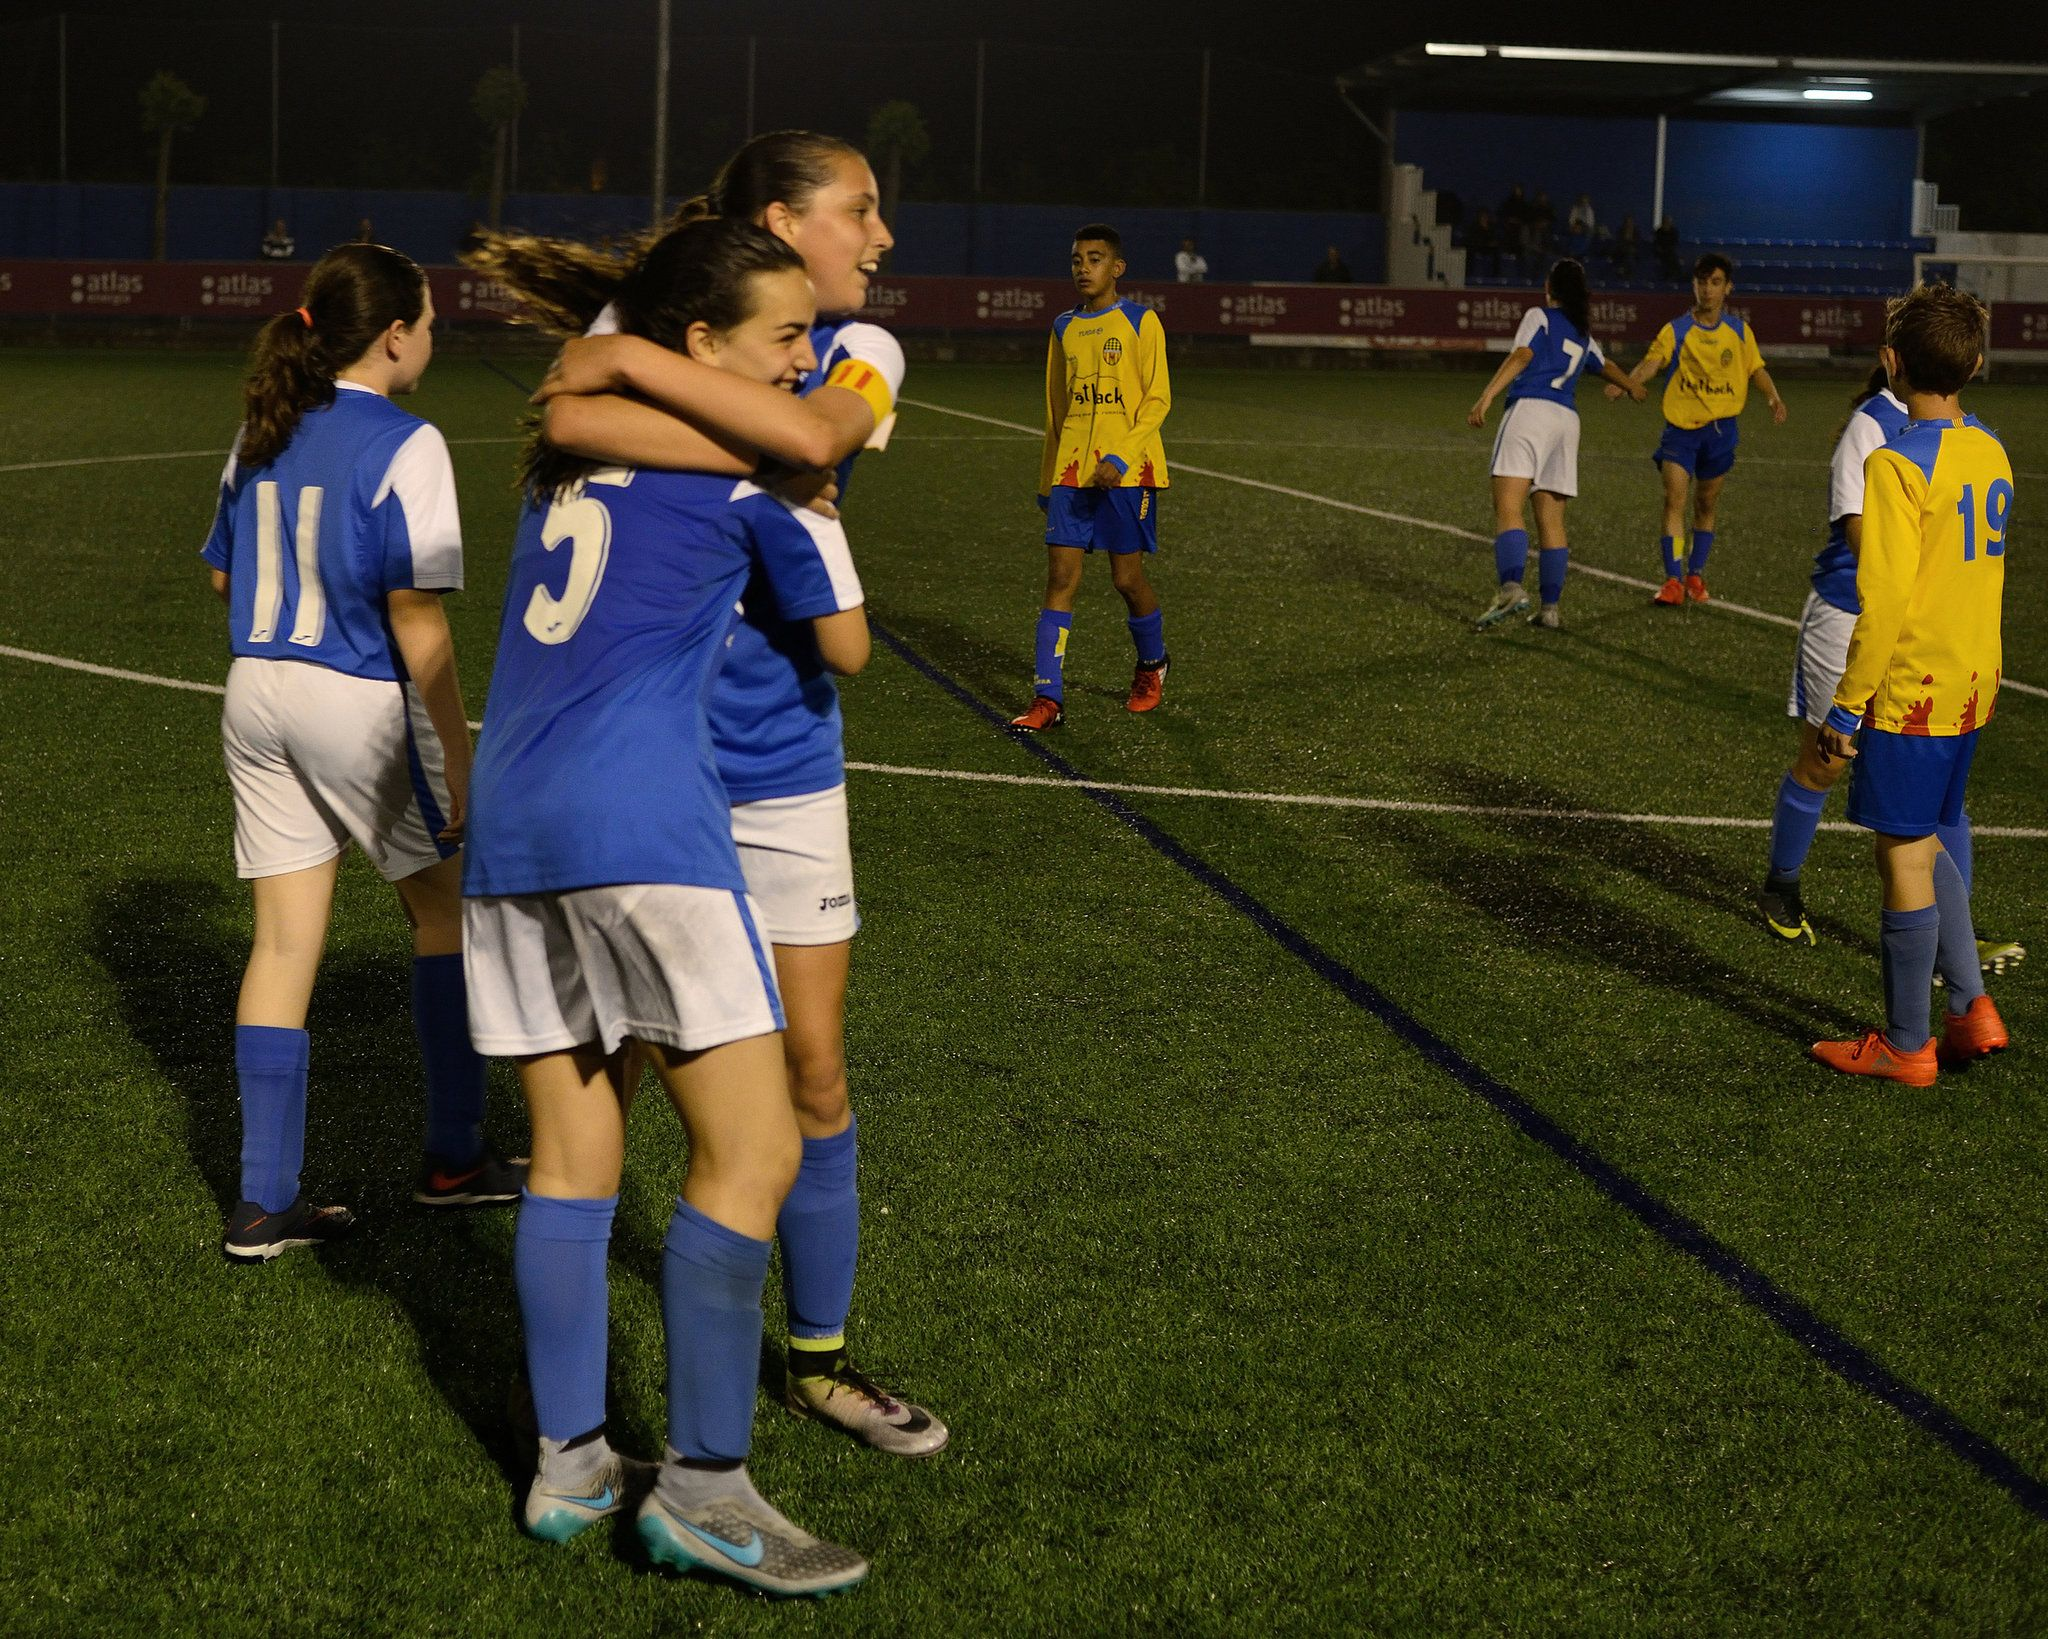 The Girls Soccer Team That Joined A Boys League And Won It